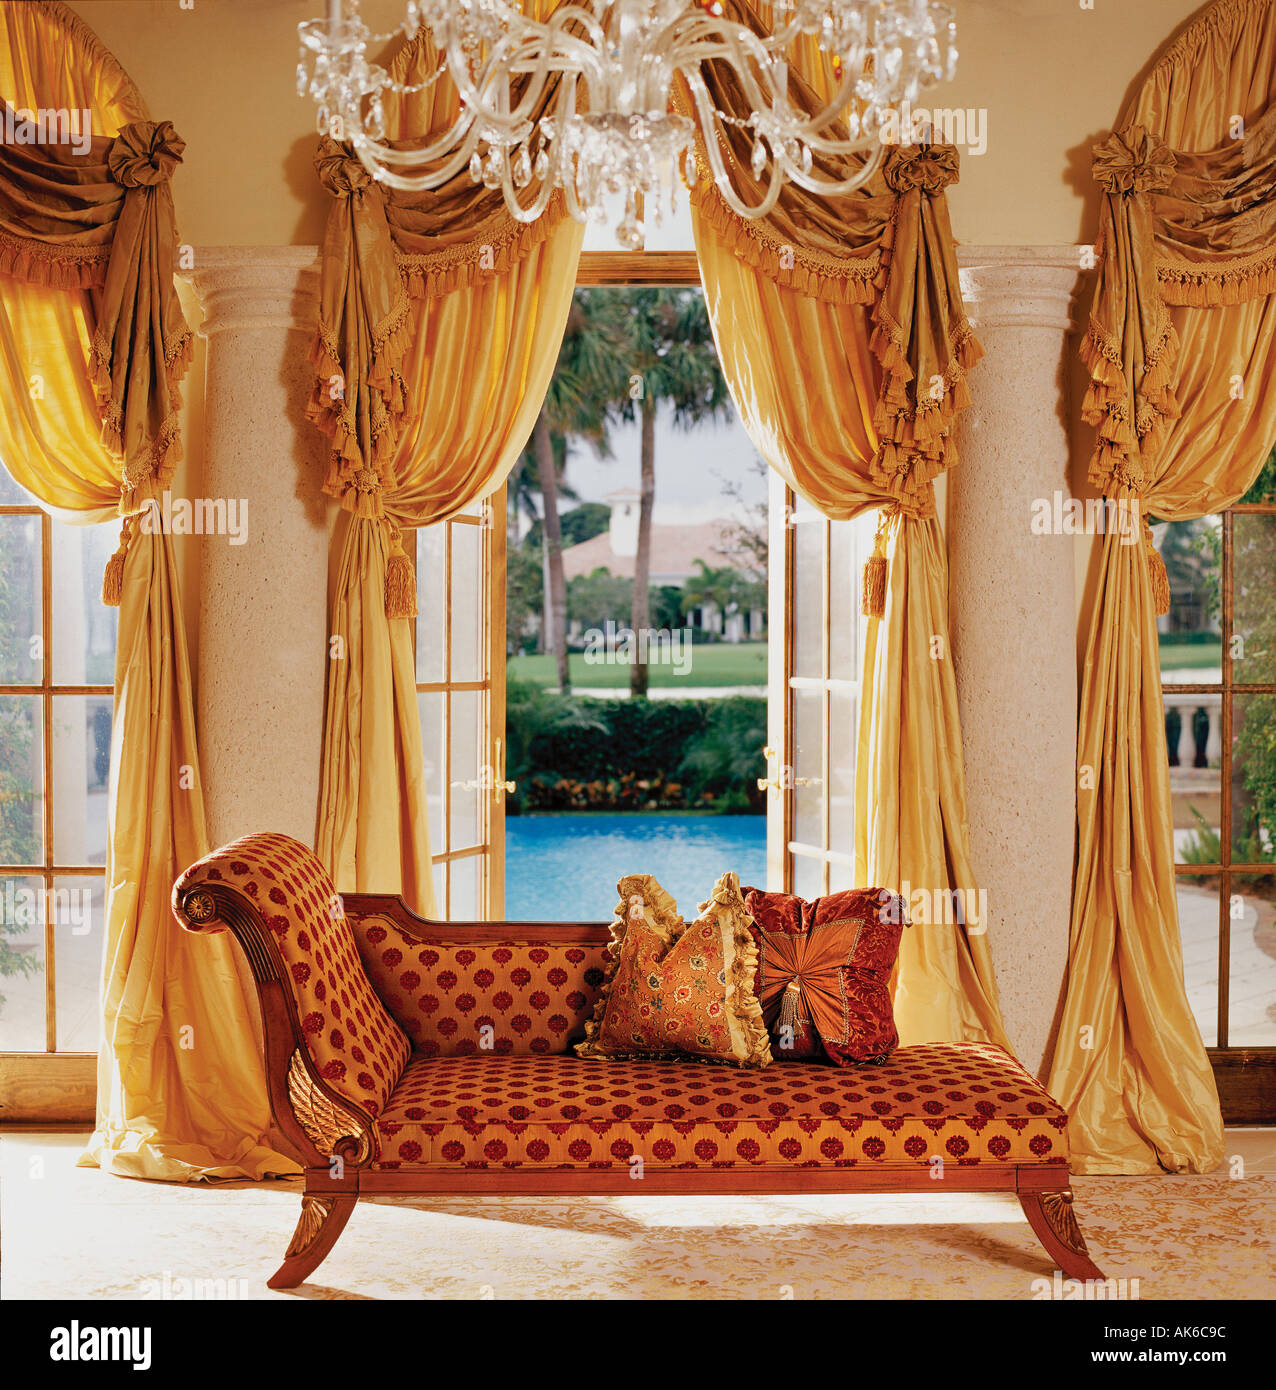 Interior of a classic home - Stock Image